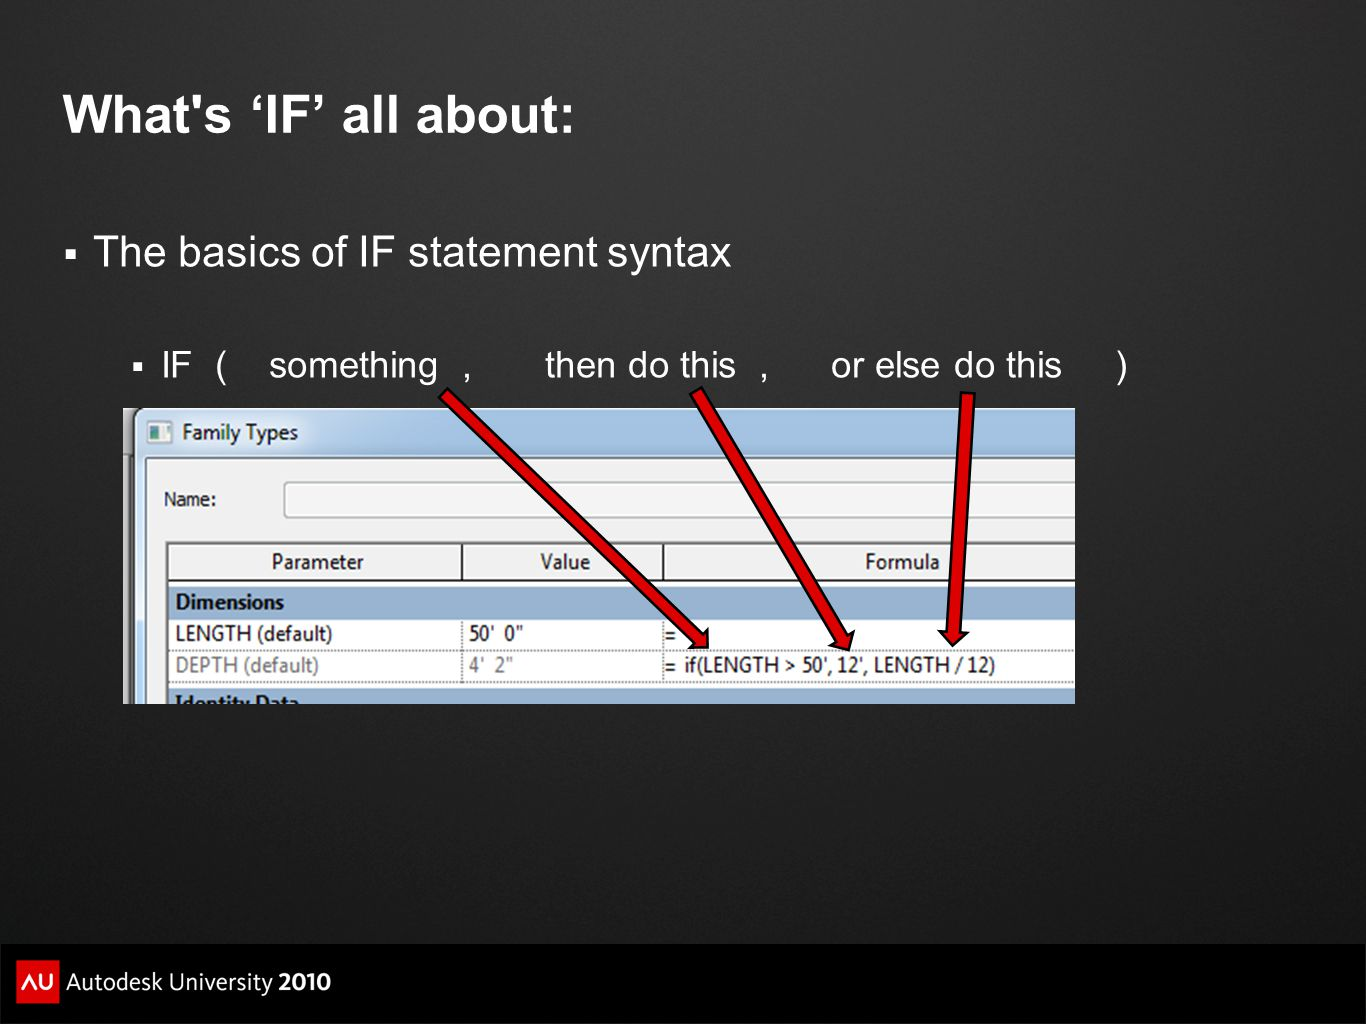 What's 'IF' all about:  The basics of IF statement syntax  IF ( something, then do this, or else do this )